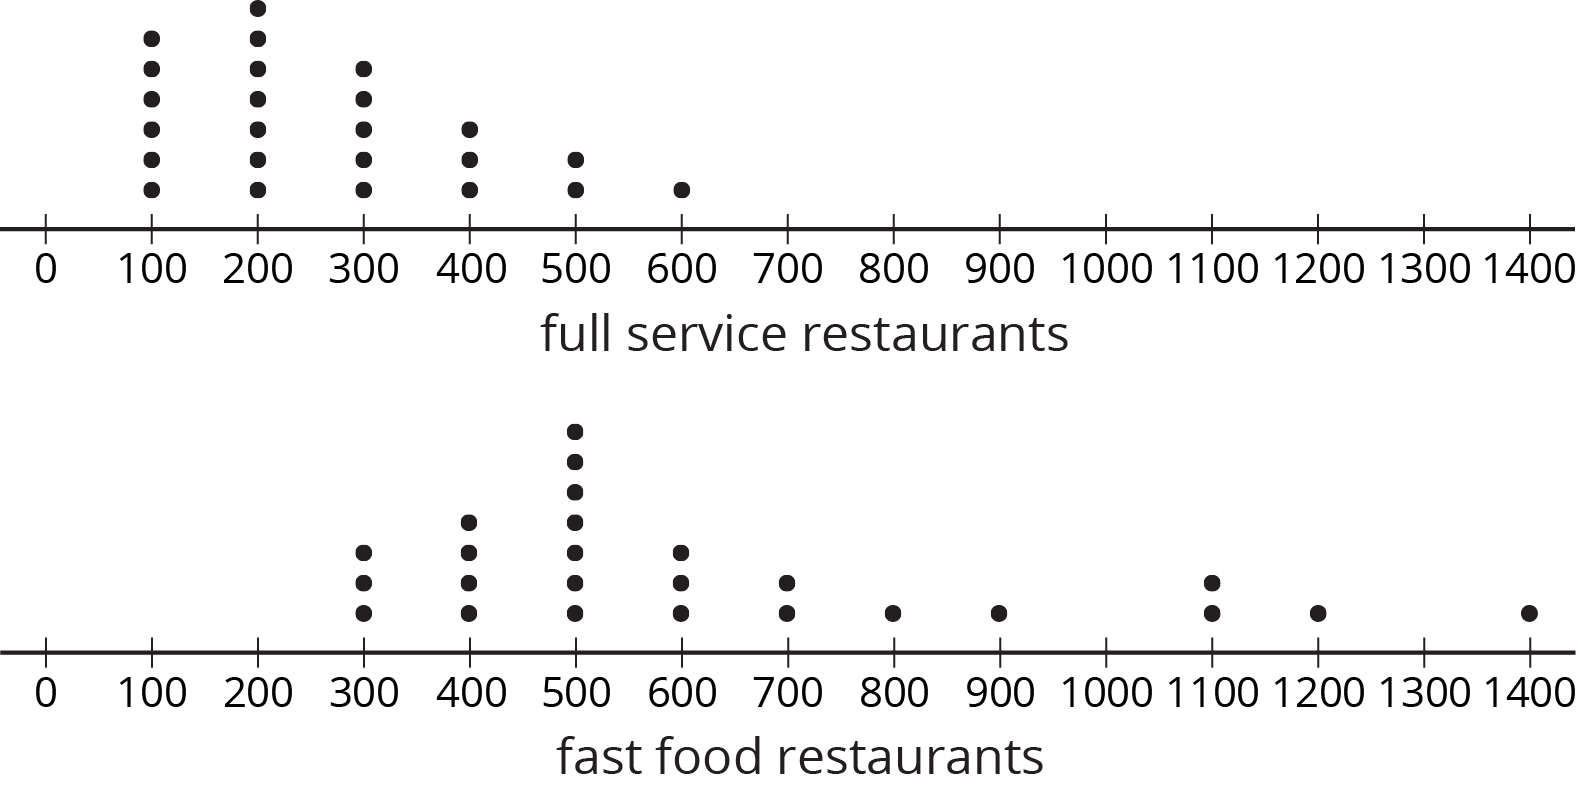 "Two dot plots labeled ""full service restaurants"" and ""fast food restaurants"" each with the numbers 0 through 1400, in increments of 100, indicated. The data are as follows:  Full service restaurants: 100 restaurants, 6 dots. 200 restaurants, 7 dots. 300 restaurants, 5 dots. 400 restaurants, 3 dots. 500 restaurants, 2 dots. 600 restaurants, 1 dot.  Fast food restaurants: 300 restaurants, 3 dots. 400 restaurants, 4 dots. 500 restaurants, 7 dots. 600 restaurants, 3 dots. 700 restaurants, 2 dots. 800 restaurants, 1 dot. 900 restaurants, 1 dot. 1100 restaurants, 2 dots. 1200 restaurants, 1 dot. 1400 restaurants, 1 dot."